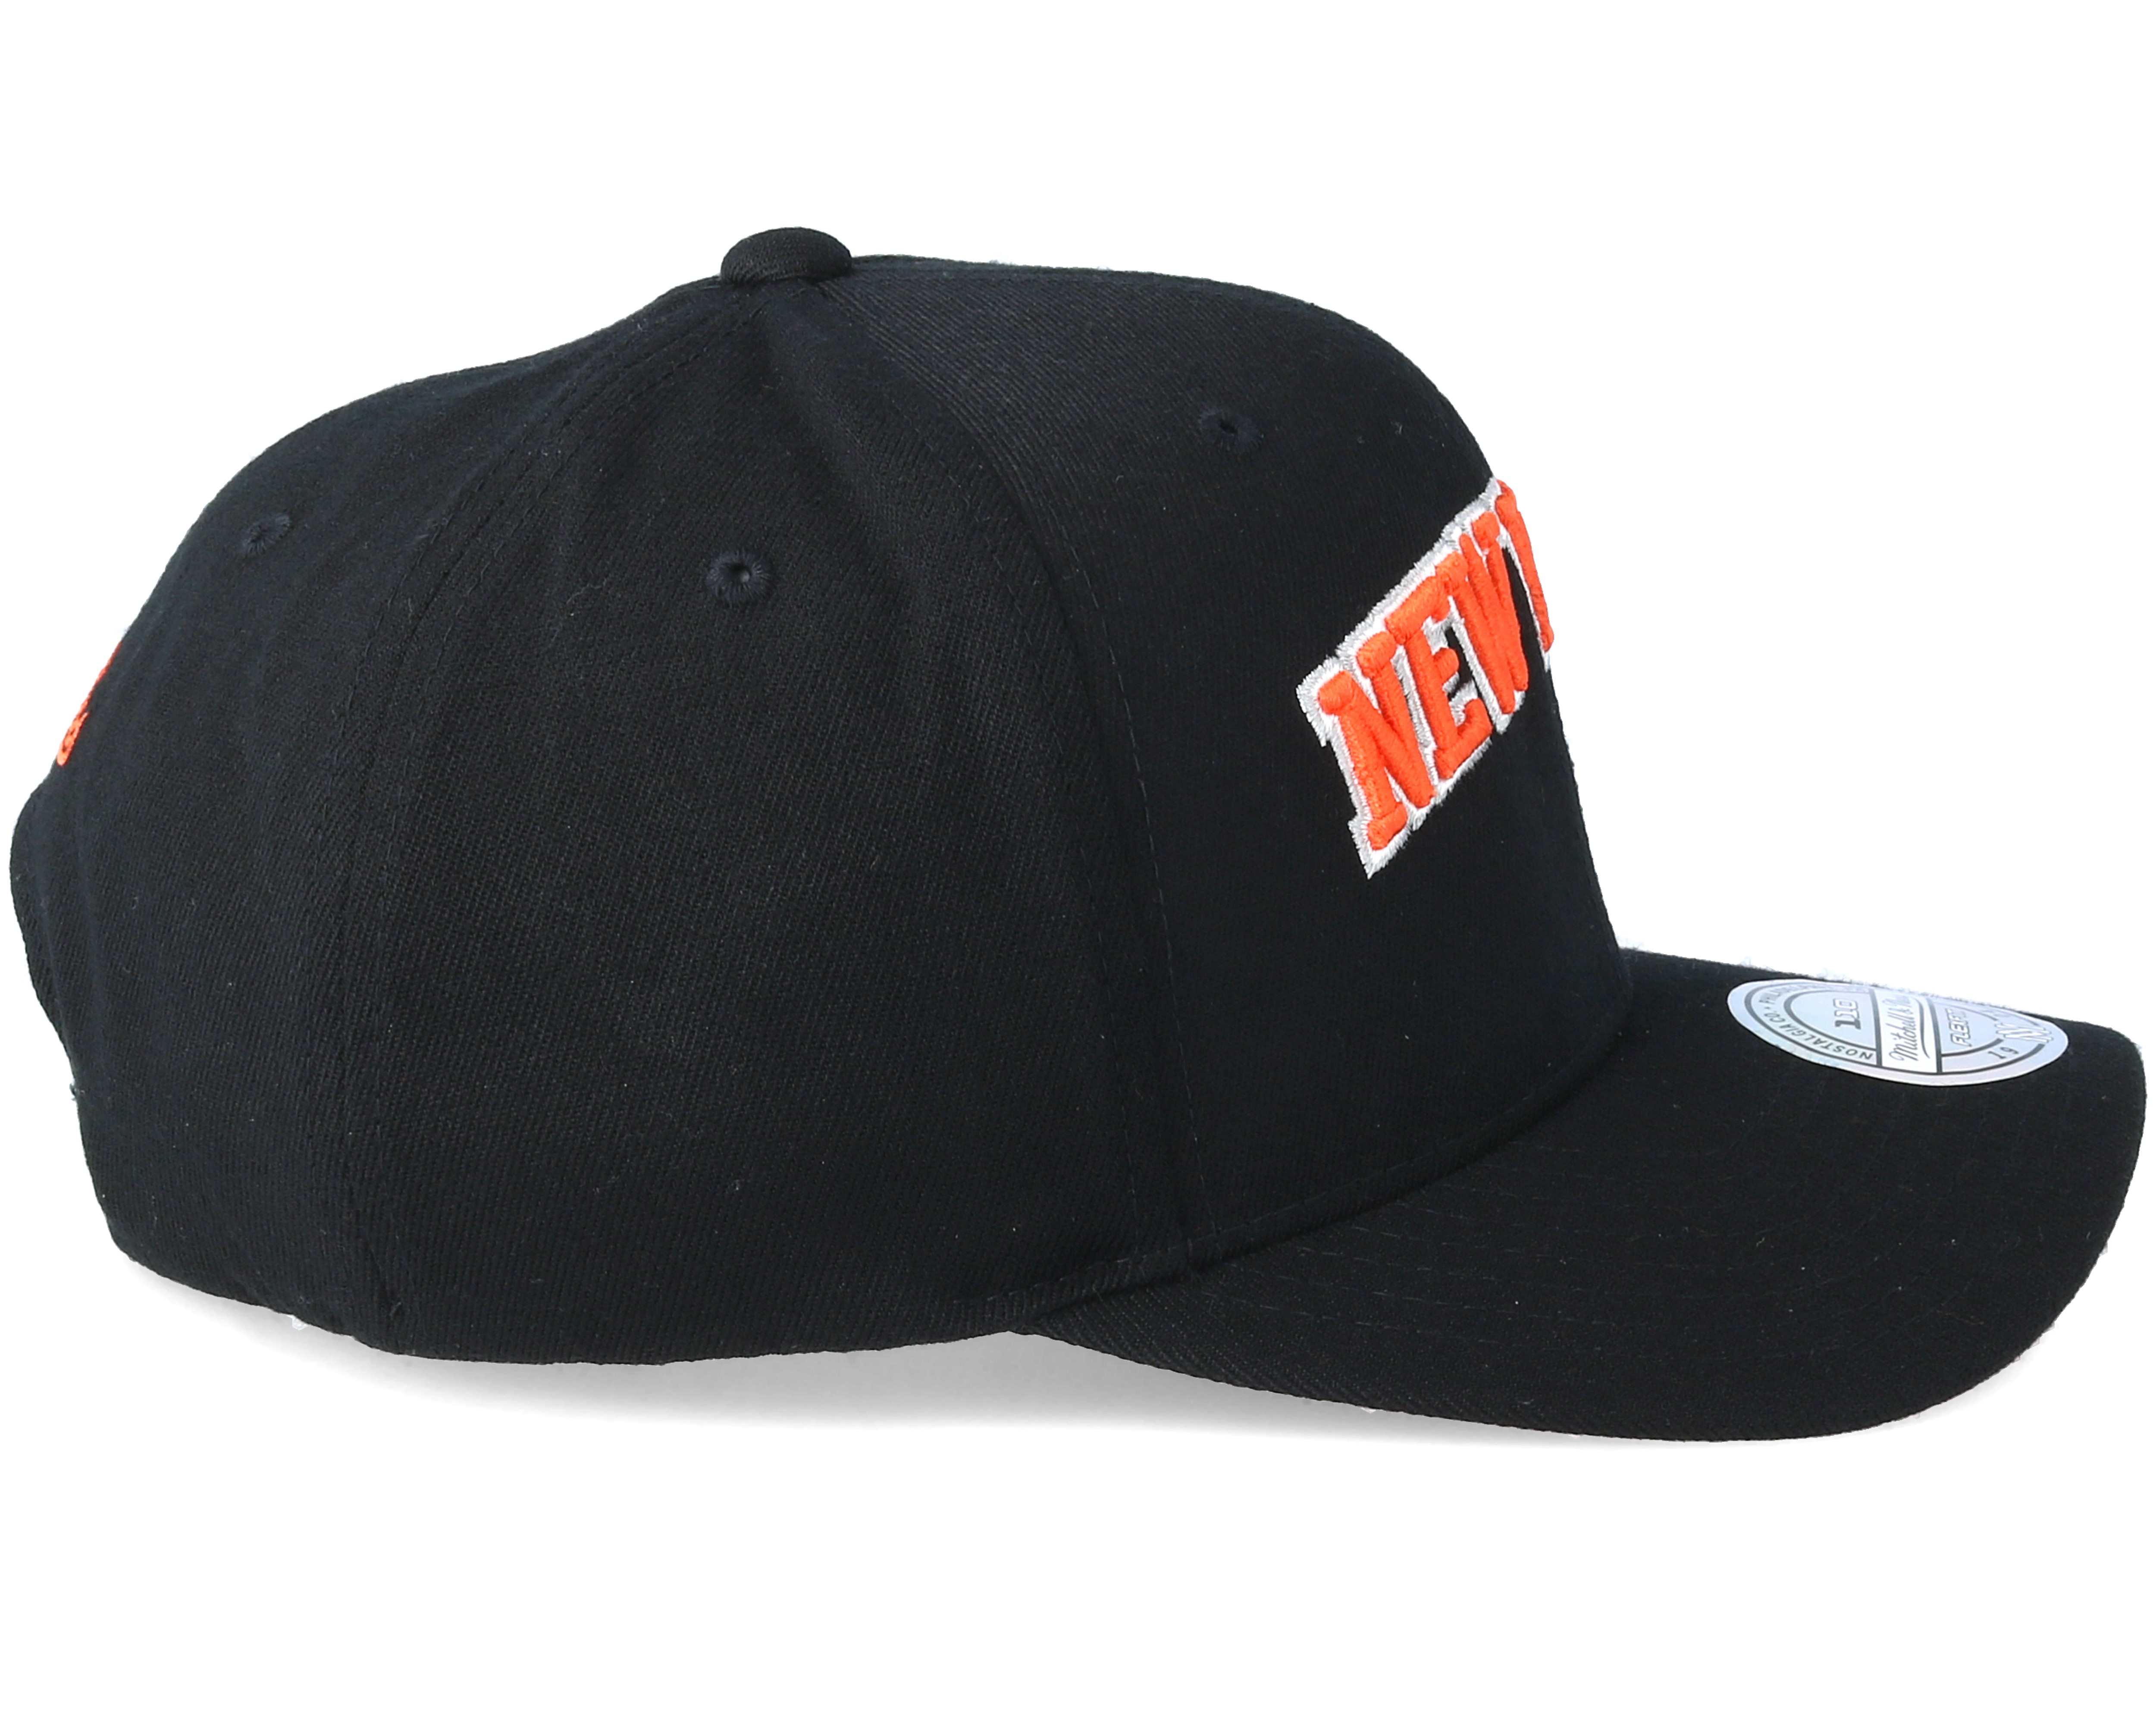 Find a New York Yankees New Era MLB Retro Classic 59FIFTY Cap at allereader.ml today! With our huge selection of New York Yankees New Era gear, you'll find what you need.